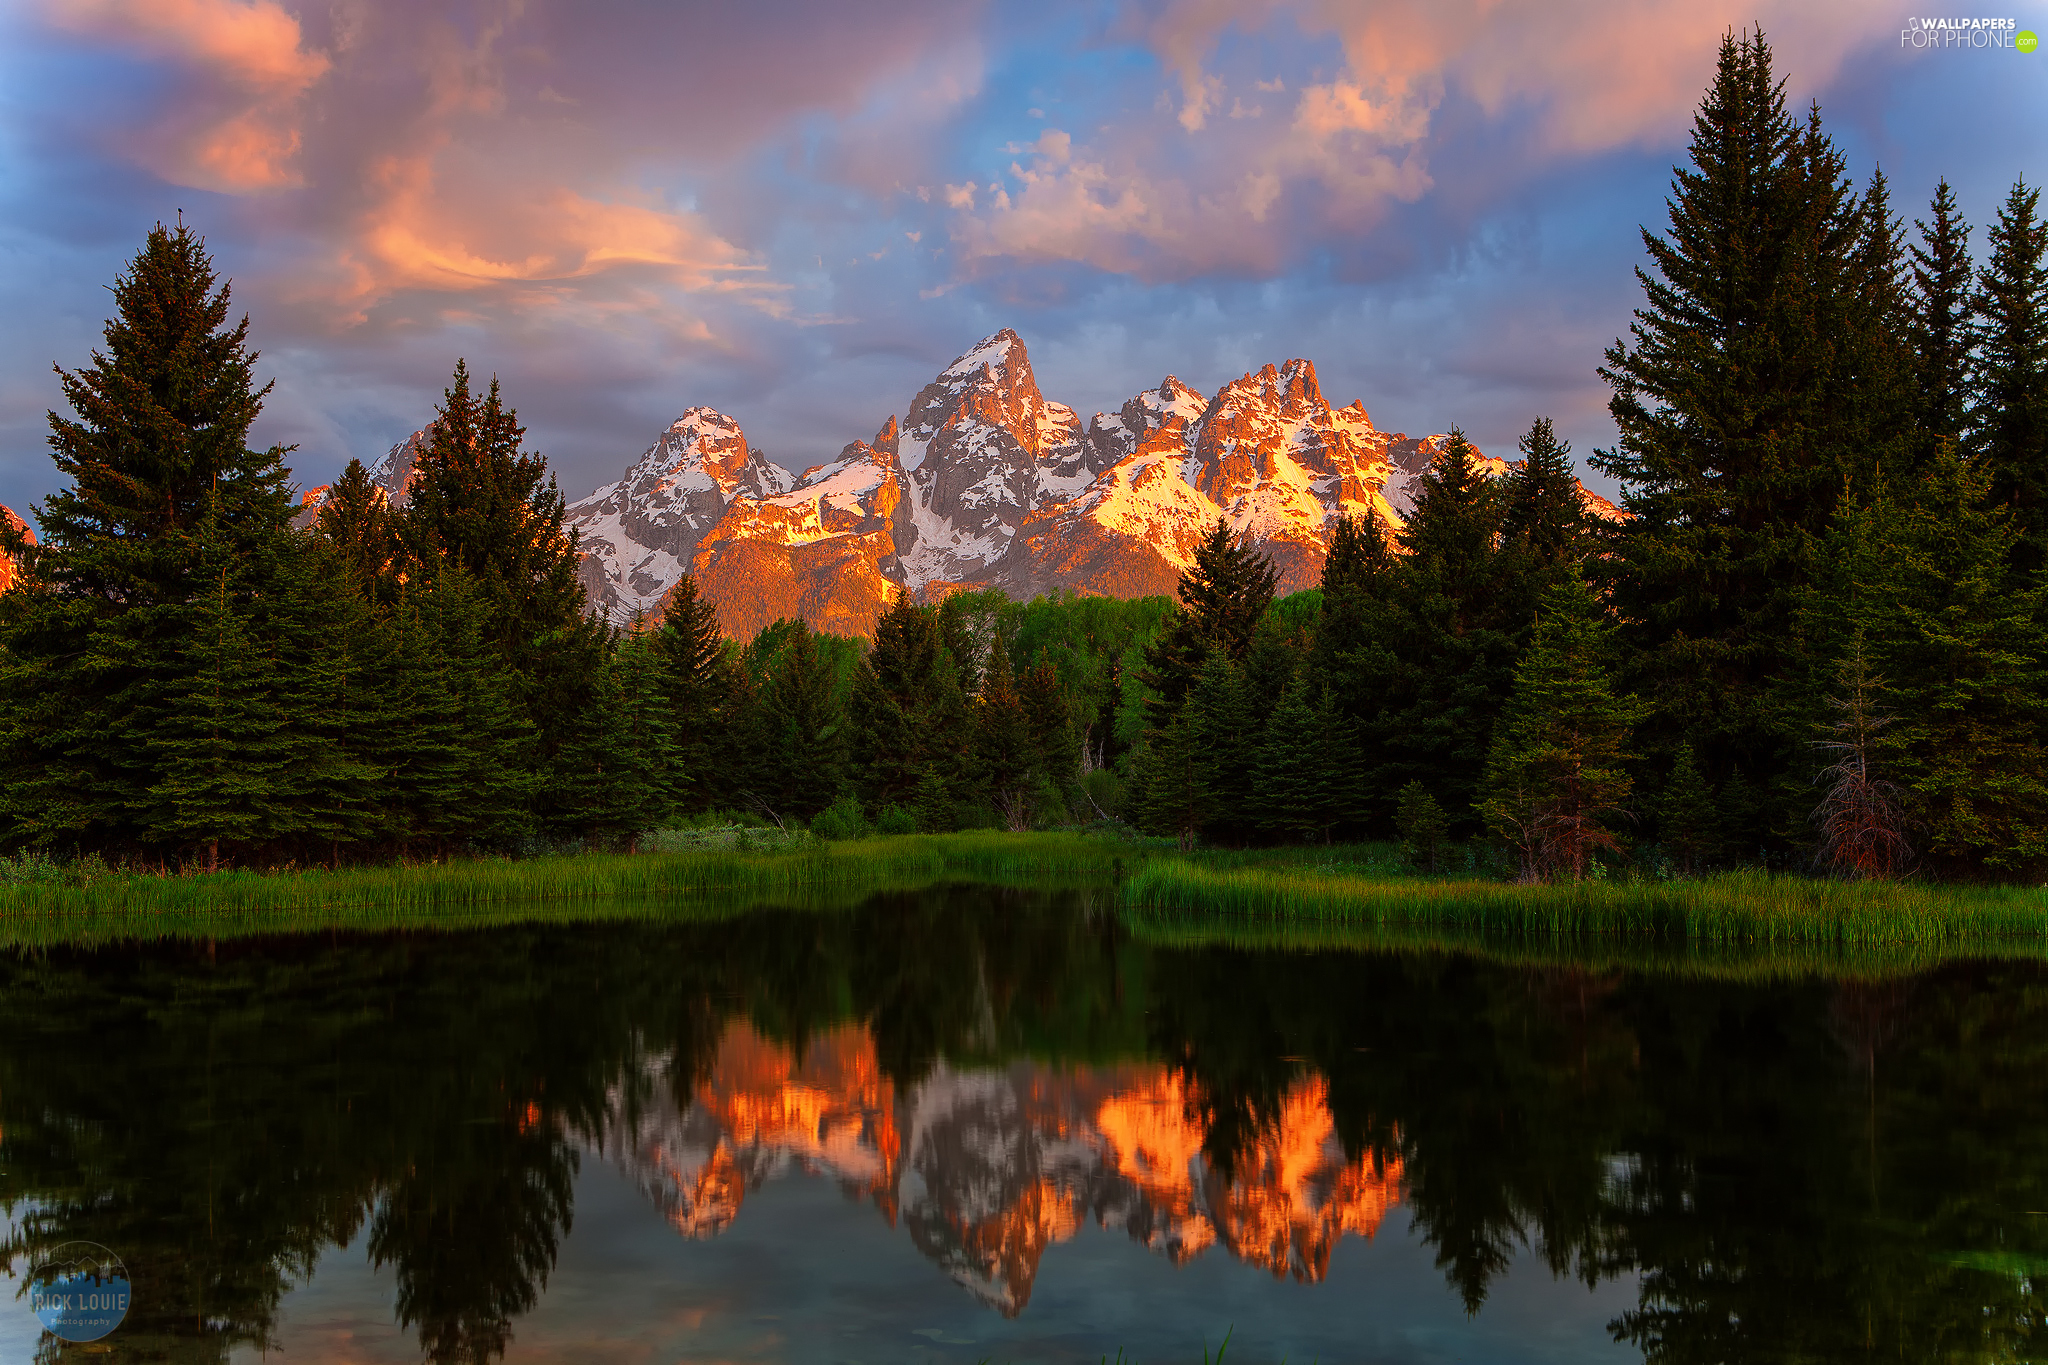 State of Wyoming, The United States, Grand Teton National Park, Snake River, viewes, Great Sunsets, reflection, trees, Teton Range Mountains